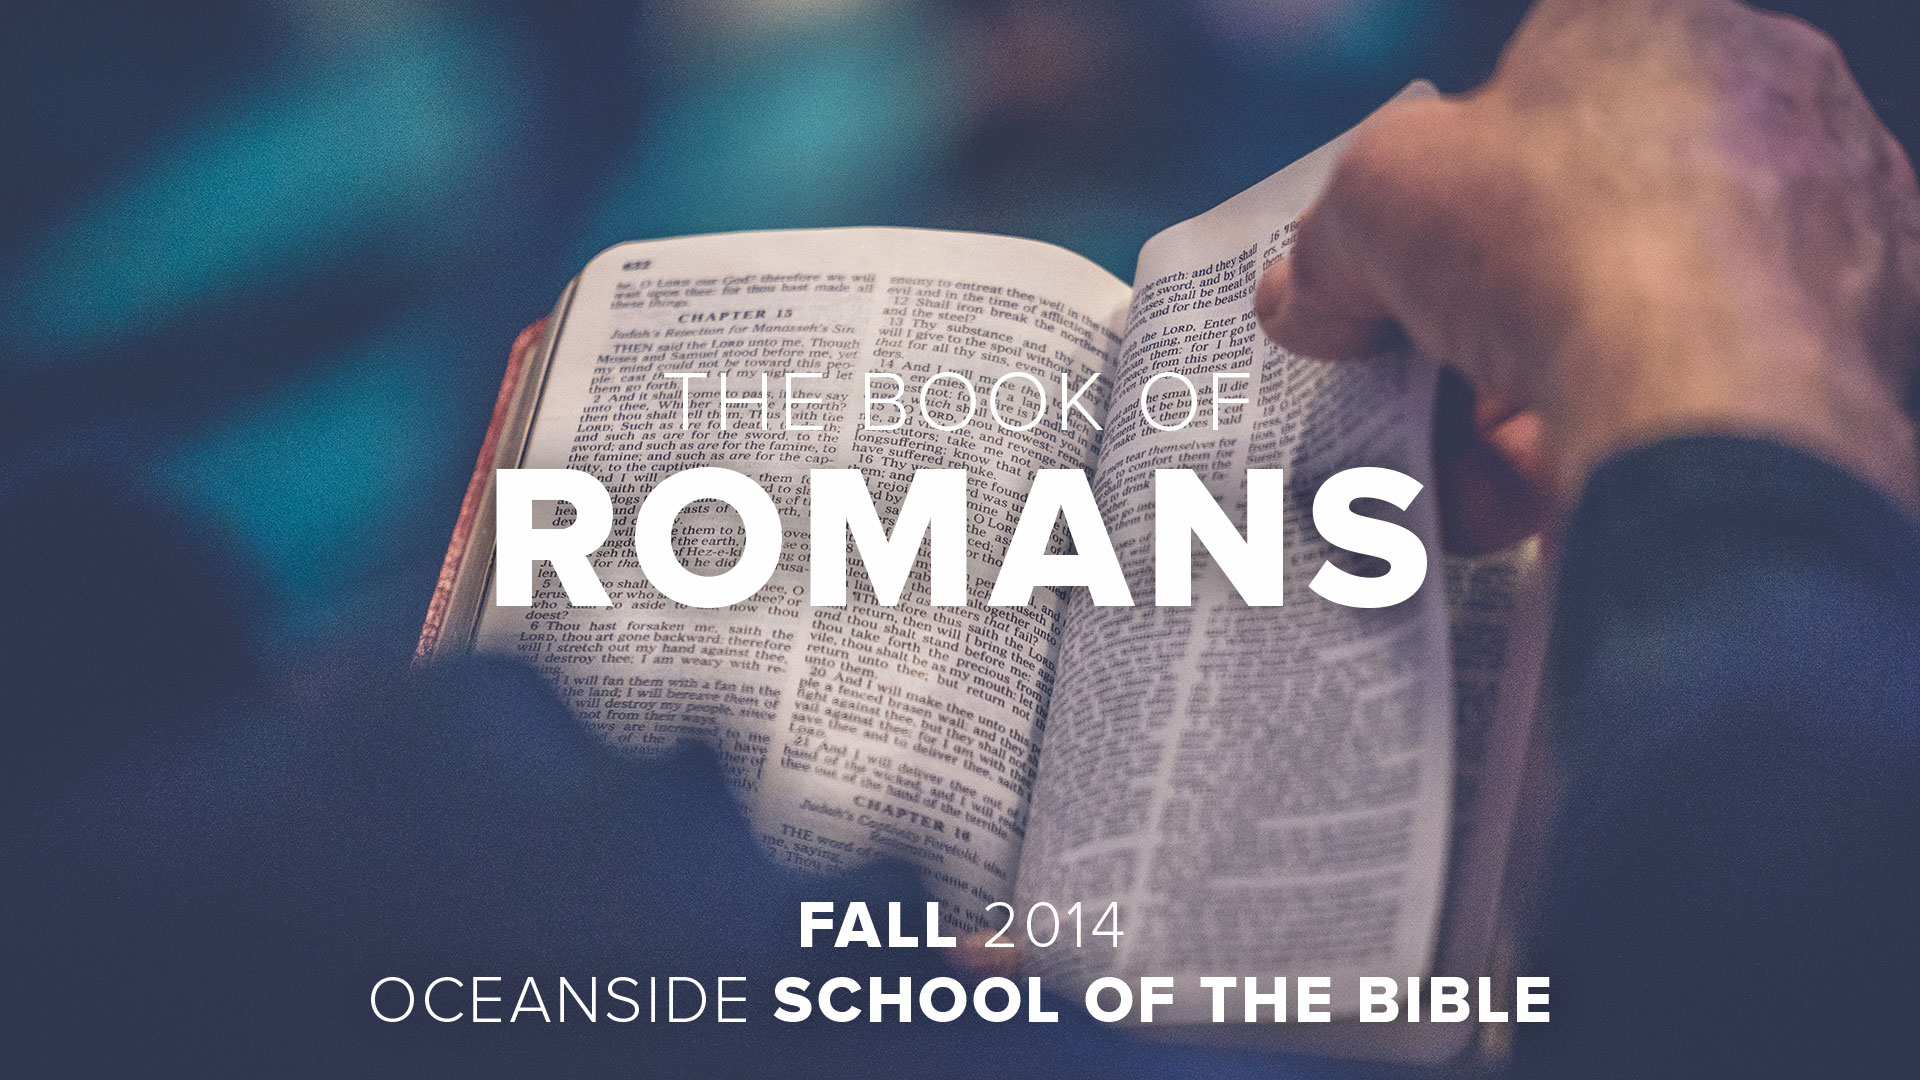 Session 4 - Romans